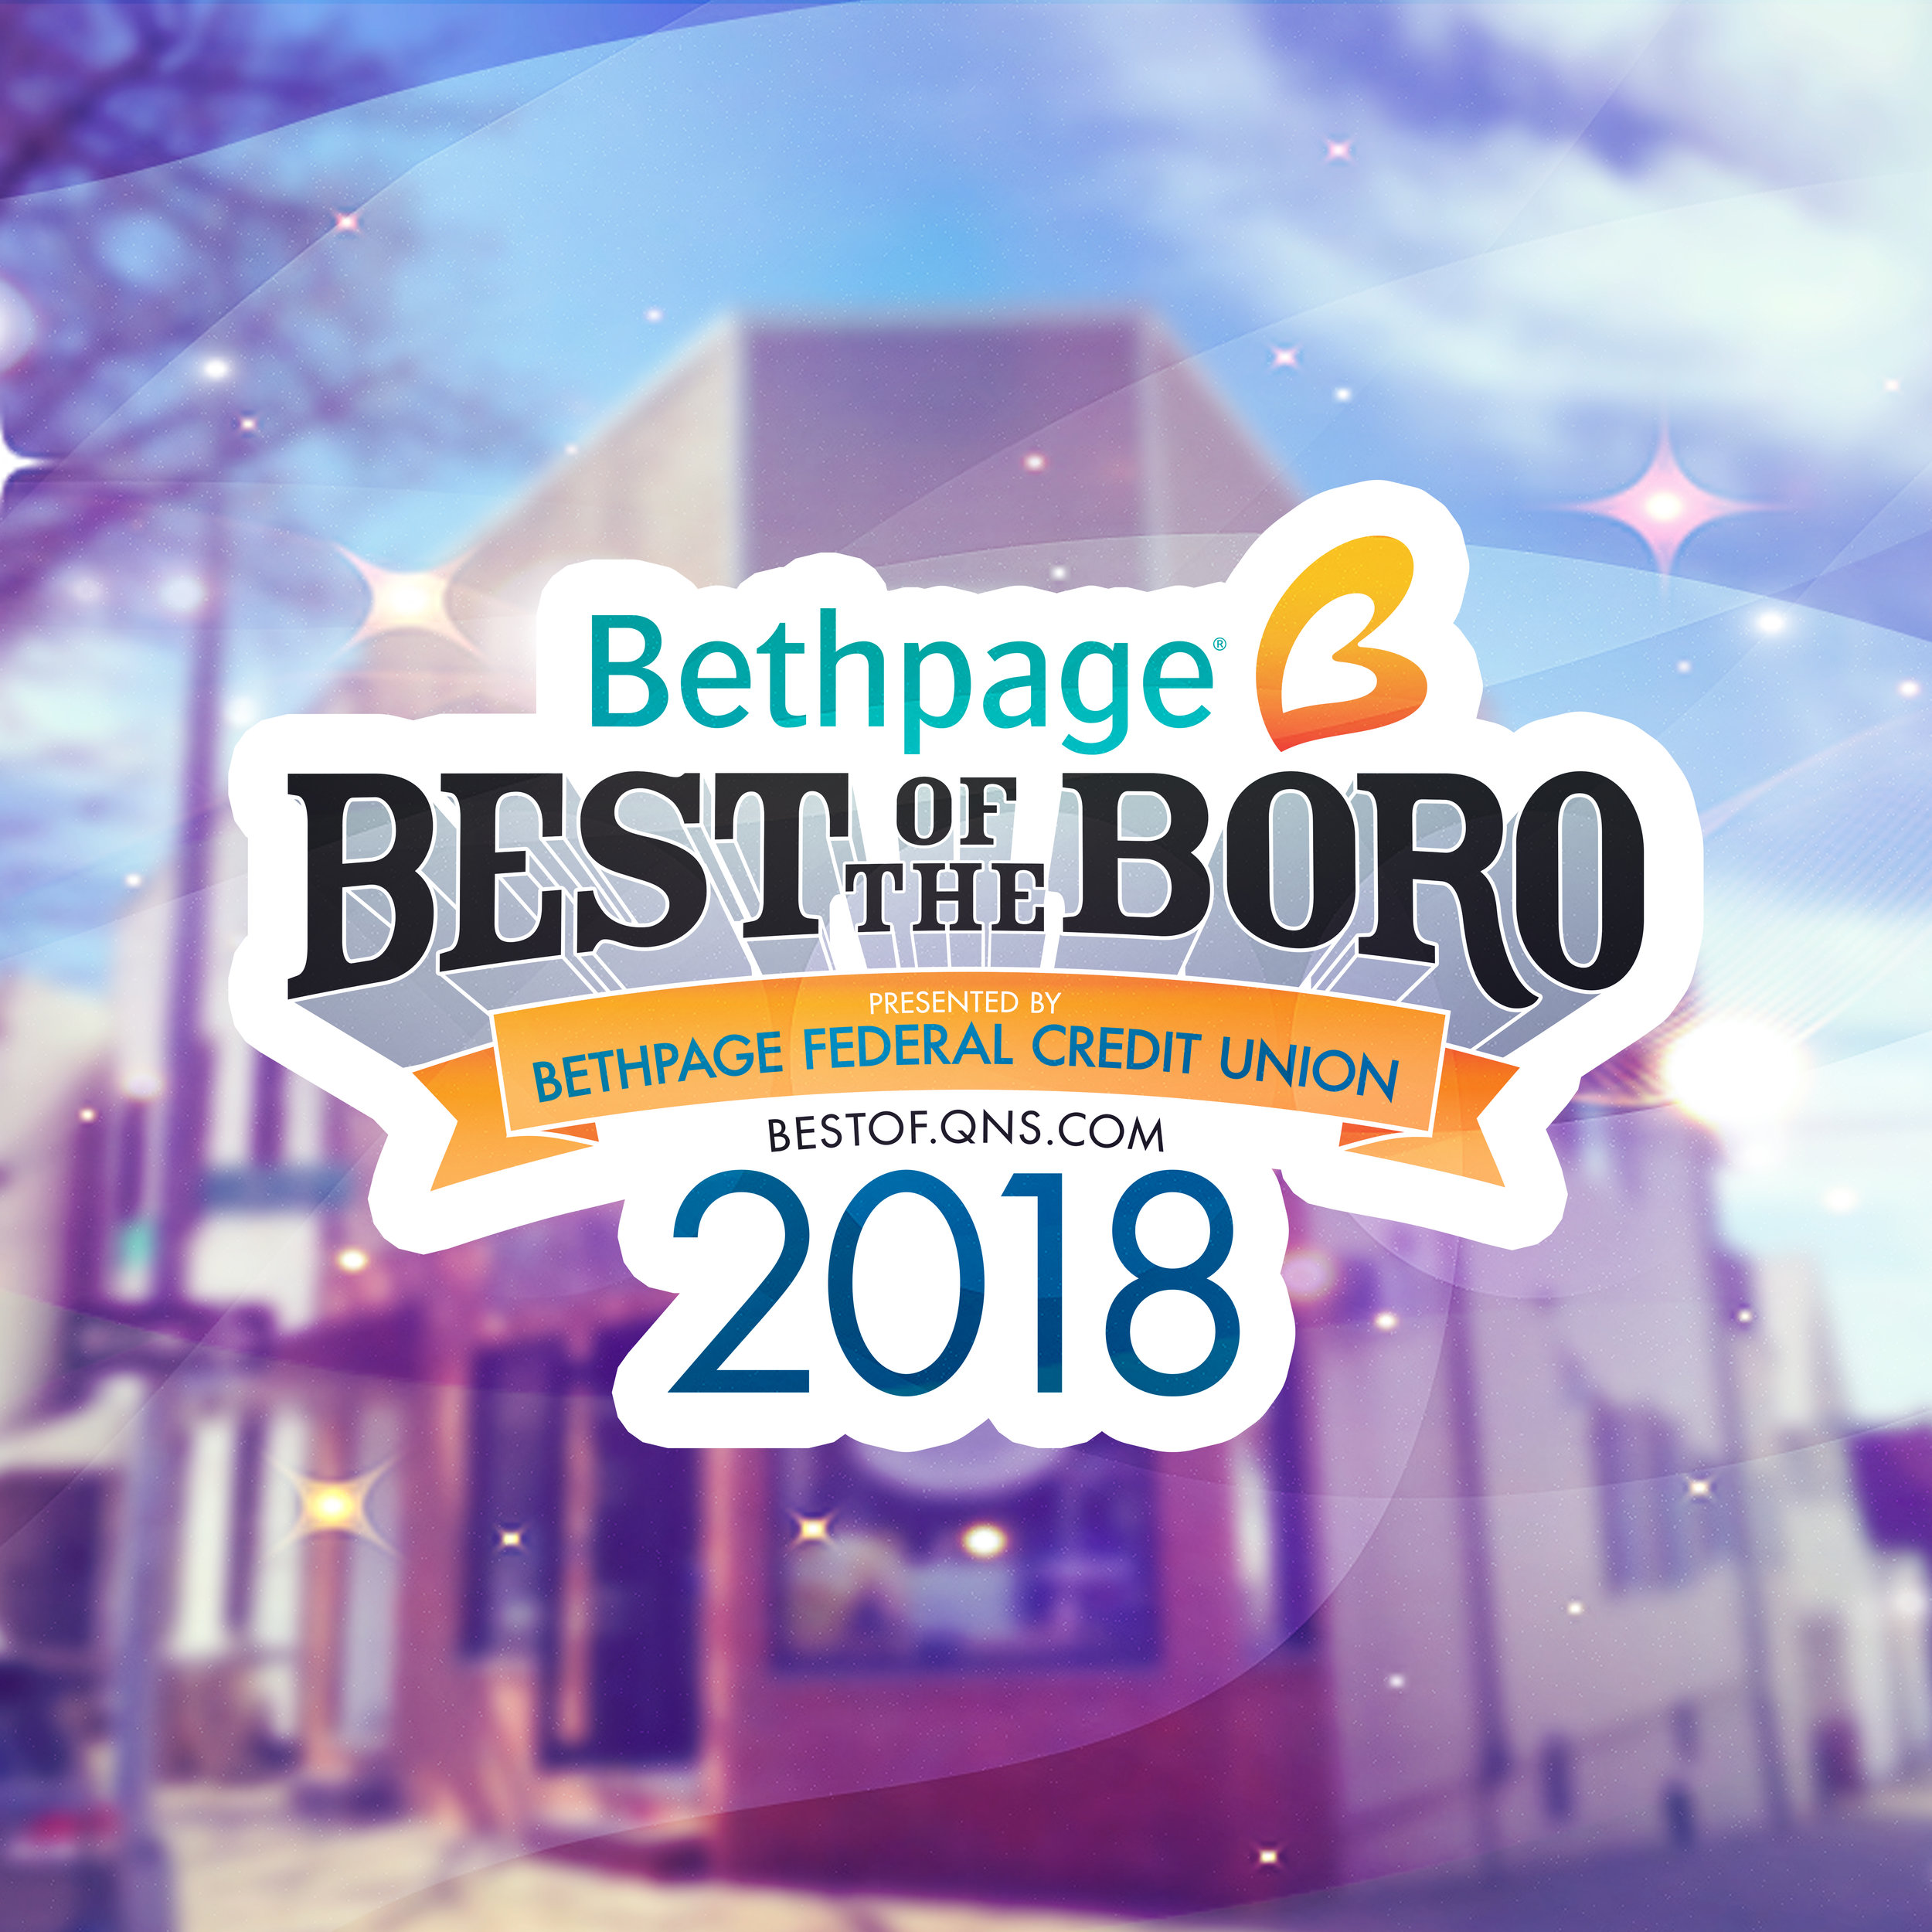 The Best of the Boro program has grown to be a coveted award for Queens's best businesses. Hundreds of businesses are nominated and thousands of the public vote each year. Only one first place winner in each category crowned BEST OF THE BORO.   Utopia Nail & Spa New York WINS the 2018 Bethpage Best of the Boro 'Best Nail Salon' in Queens